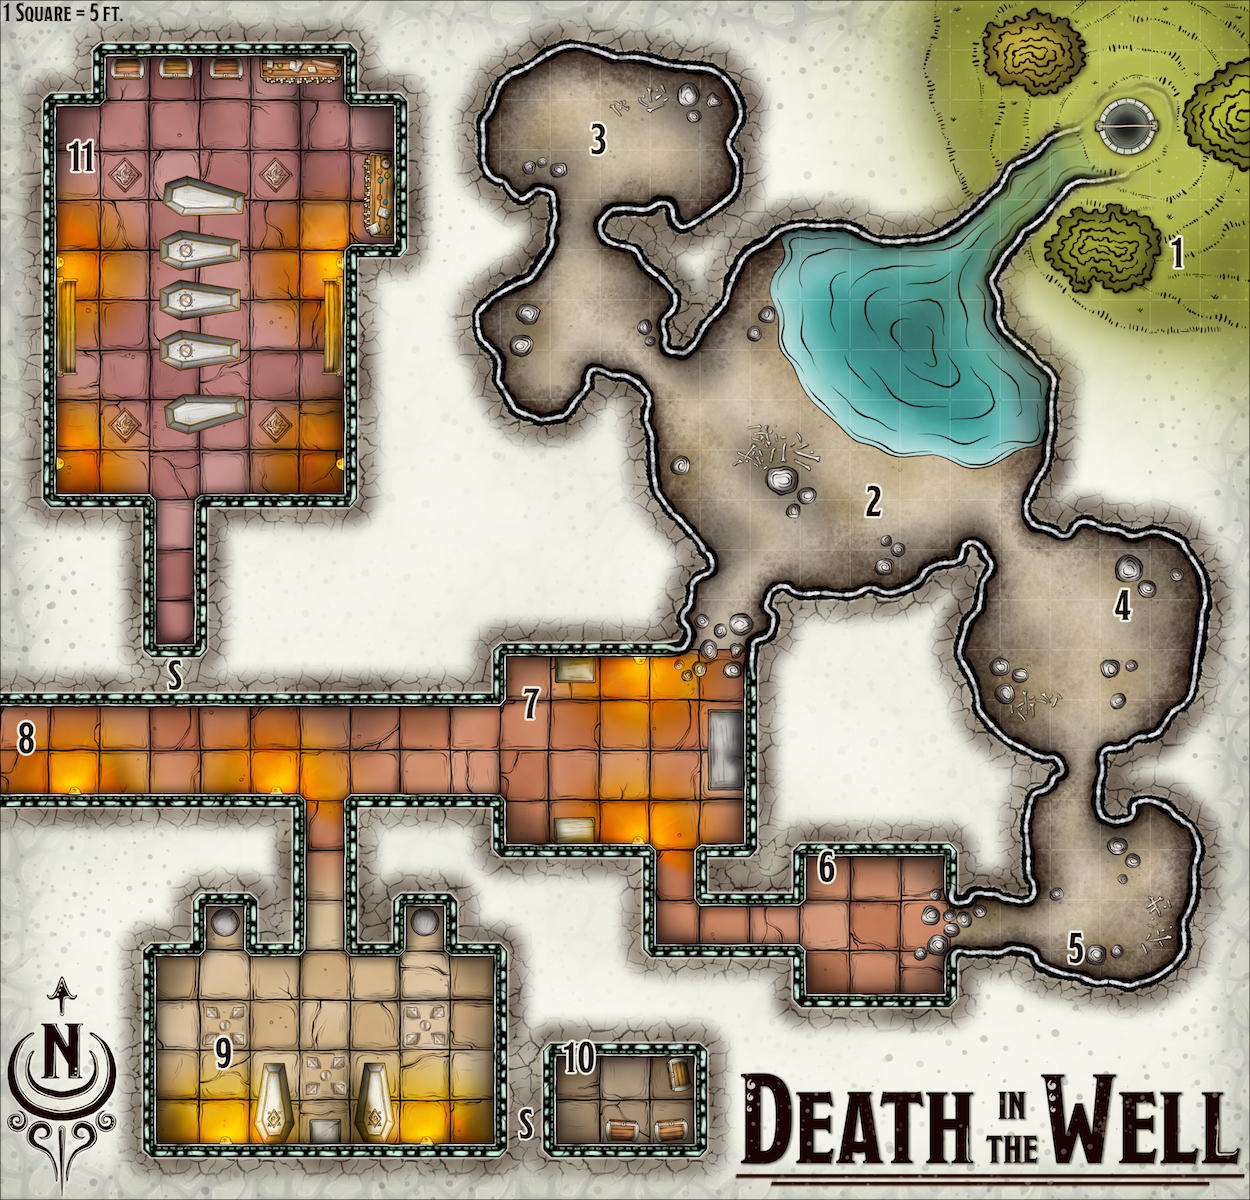 353 Death in the Well